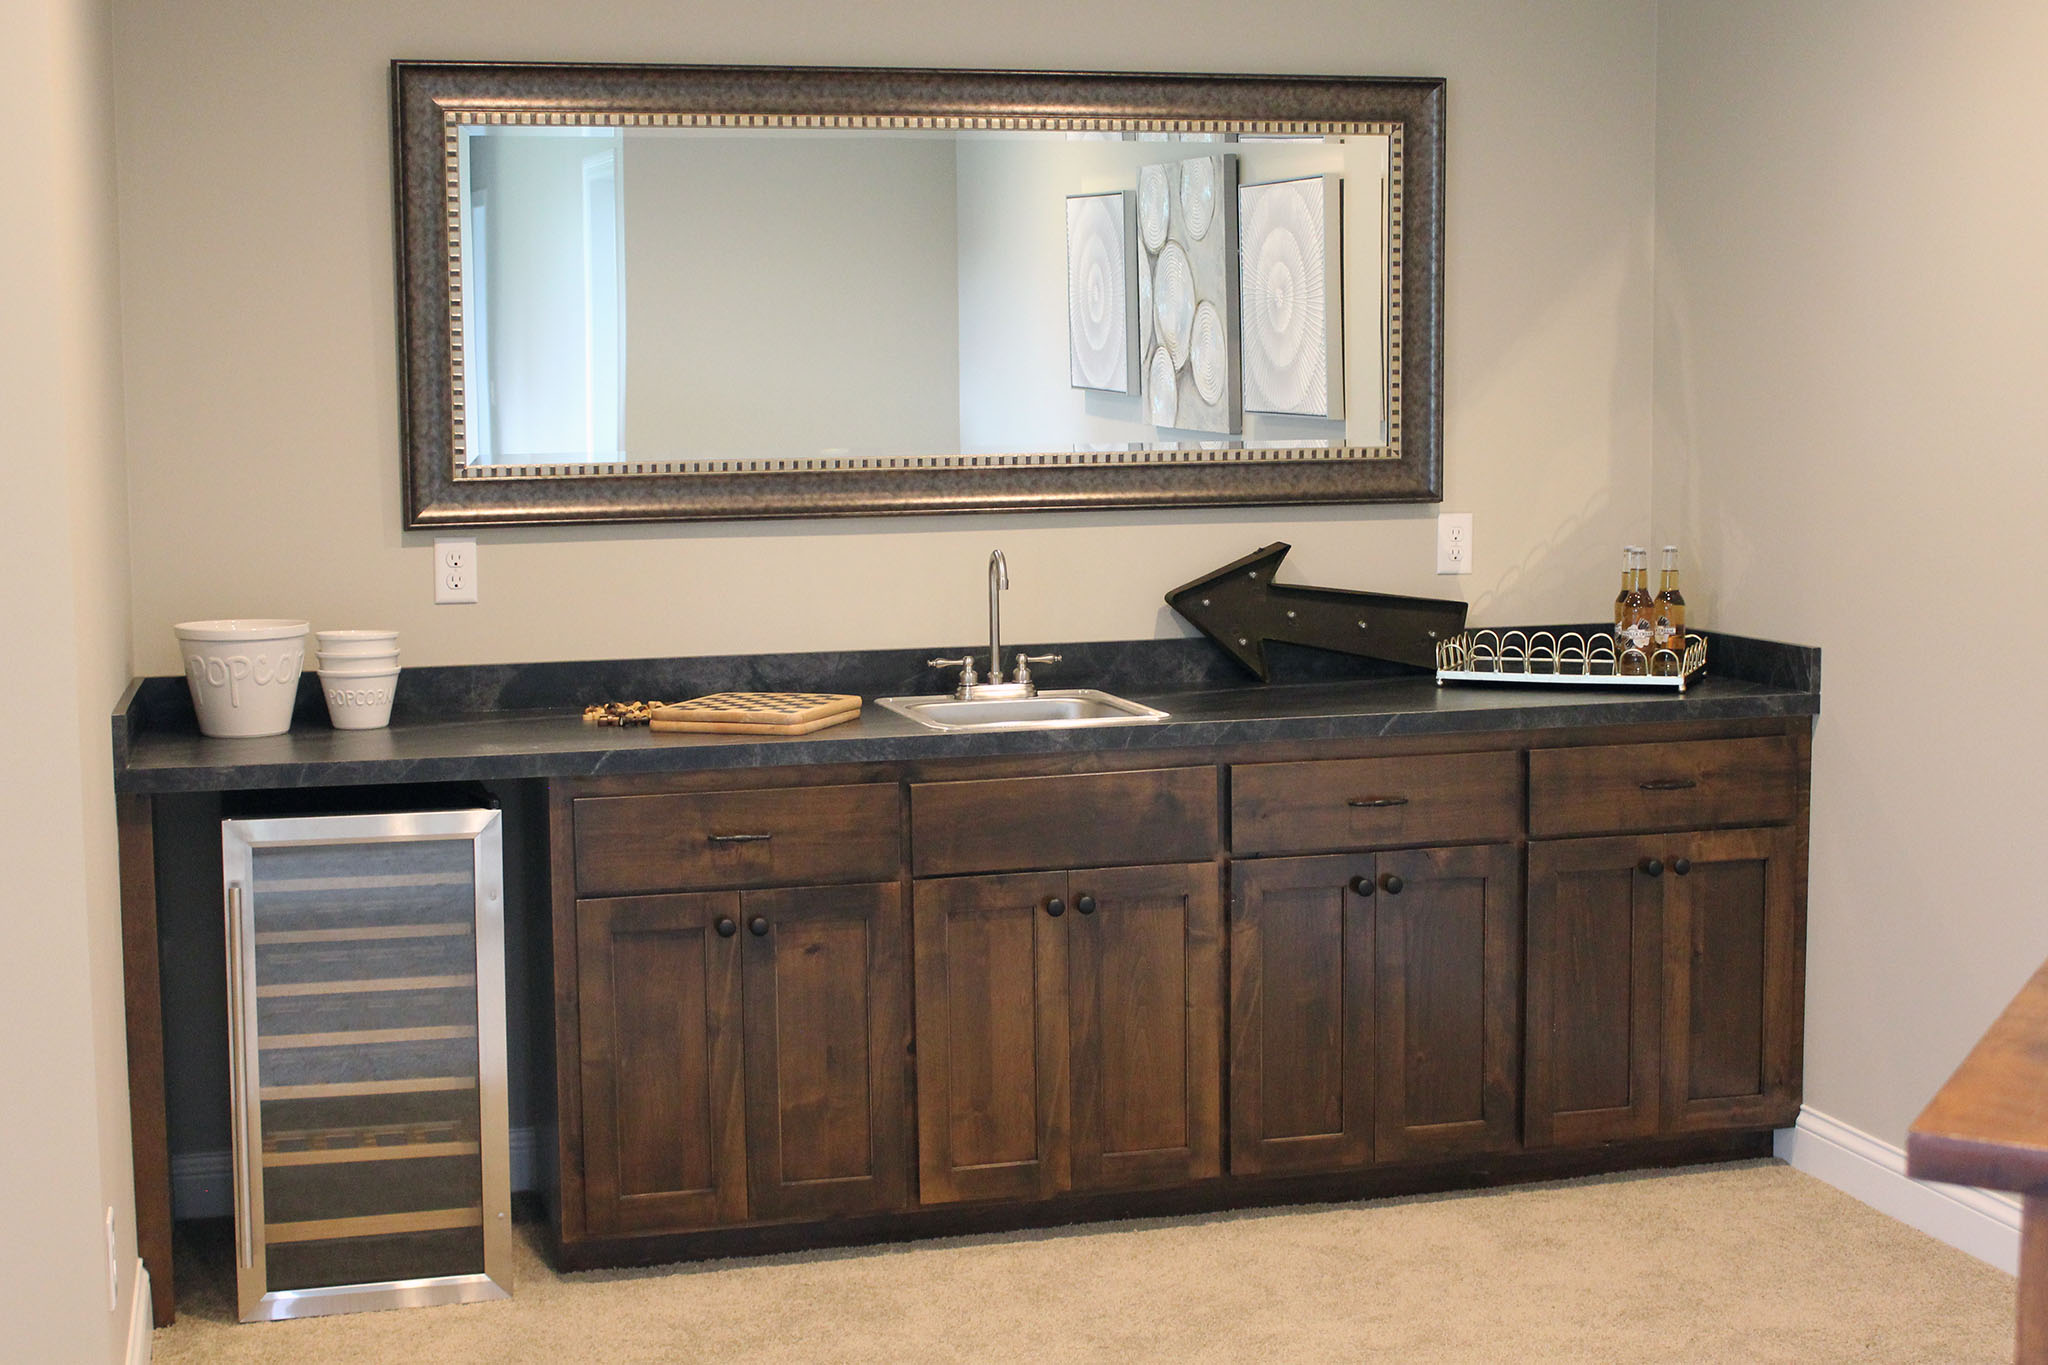 Basement single-wall wet bar with custom cabinets and granite countertops